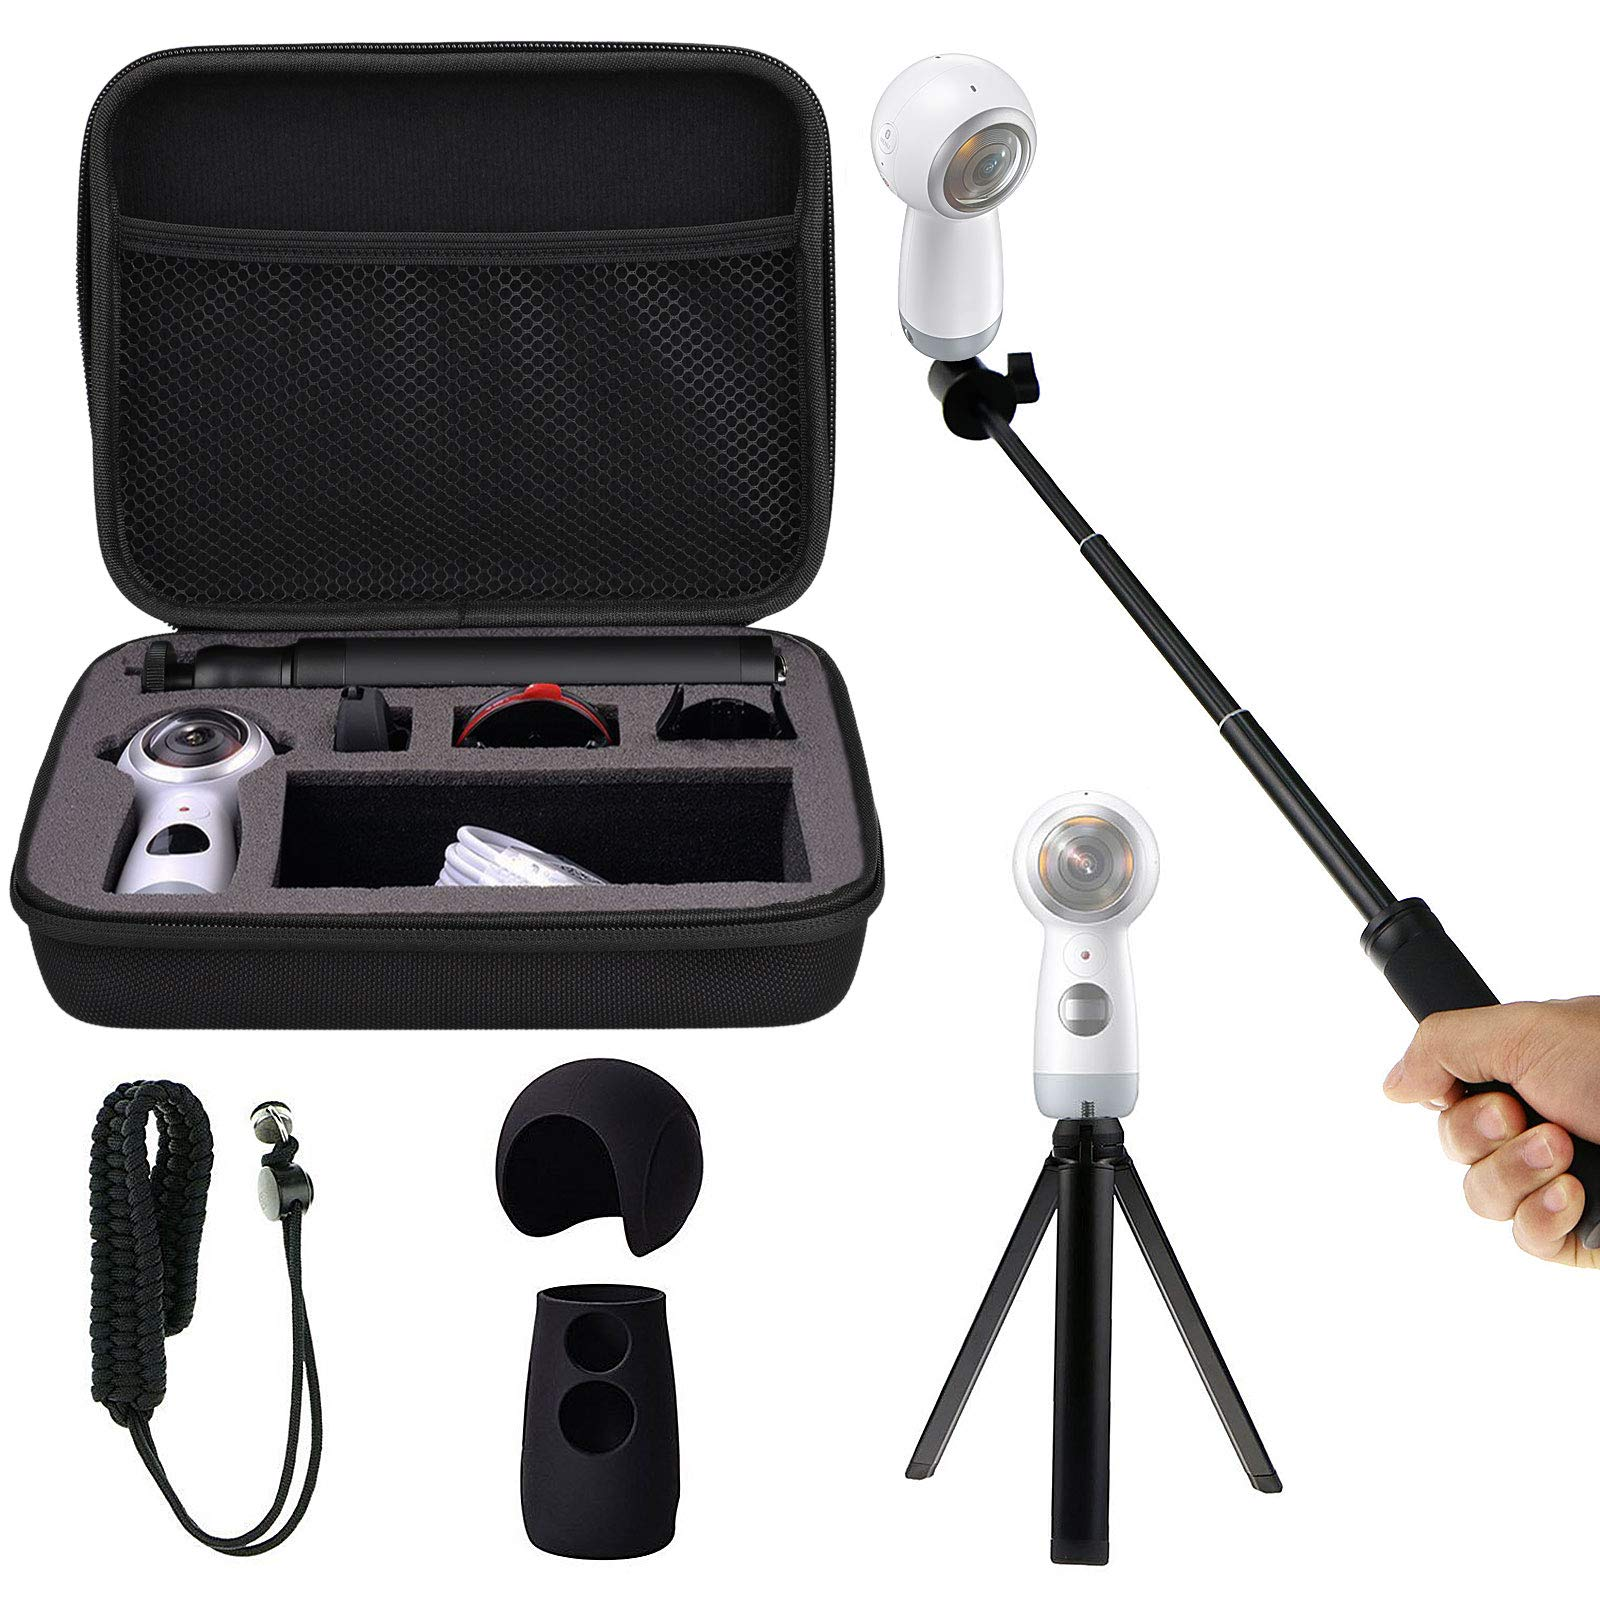 Shockproof Protective Carrying Case, Selfie Stick Monopod, Mini Tripod Stand, Soft Silicone Skin, Wrist Strap for Samsung Gear 360 2017, EEEKit All in One Accessory Kit (All in 1 Kit for 2017 Edition) by EEEKit